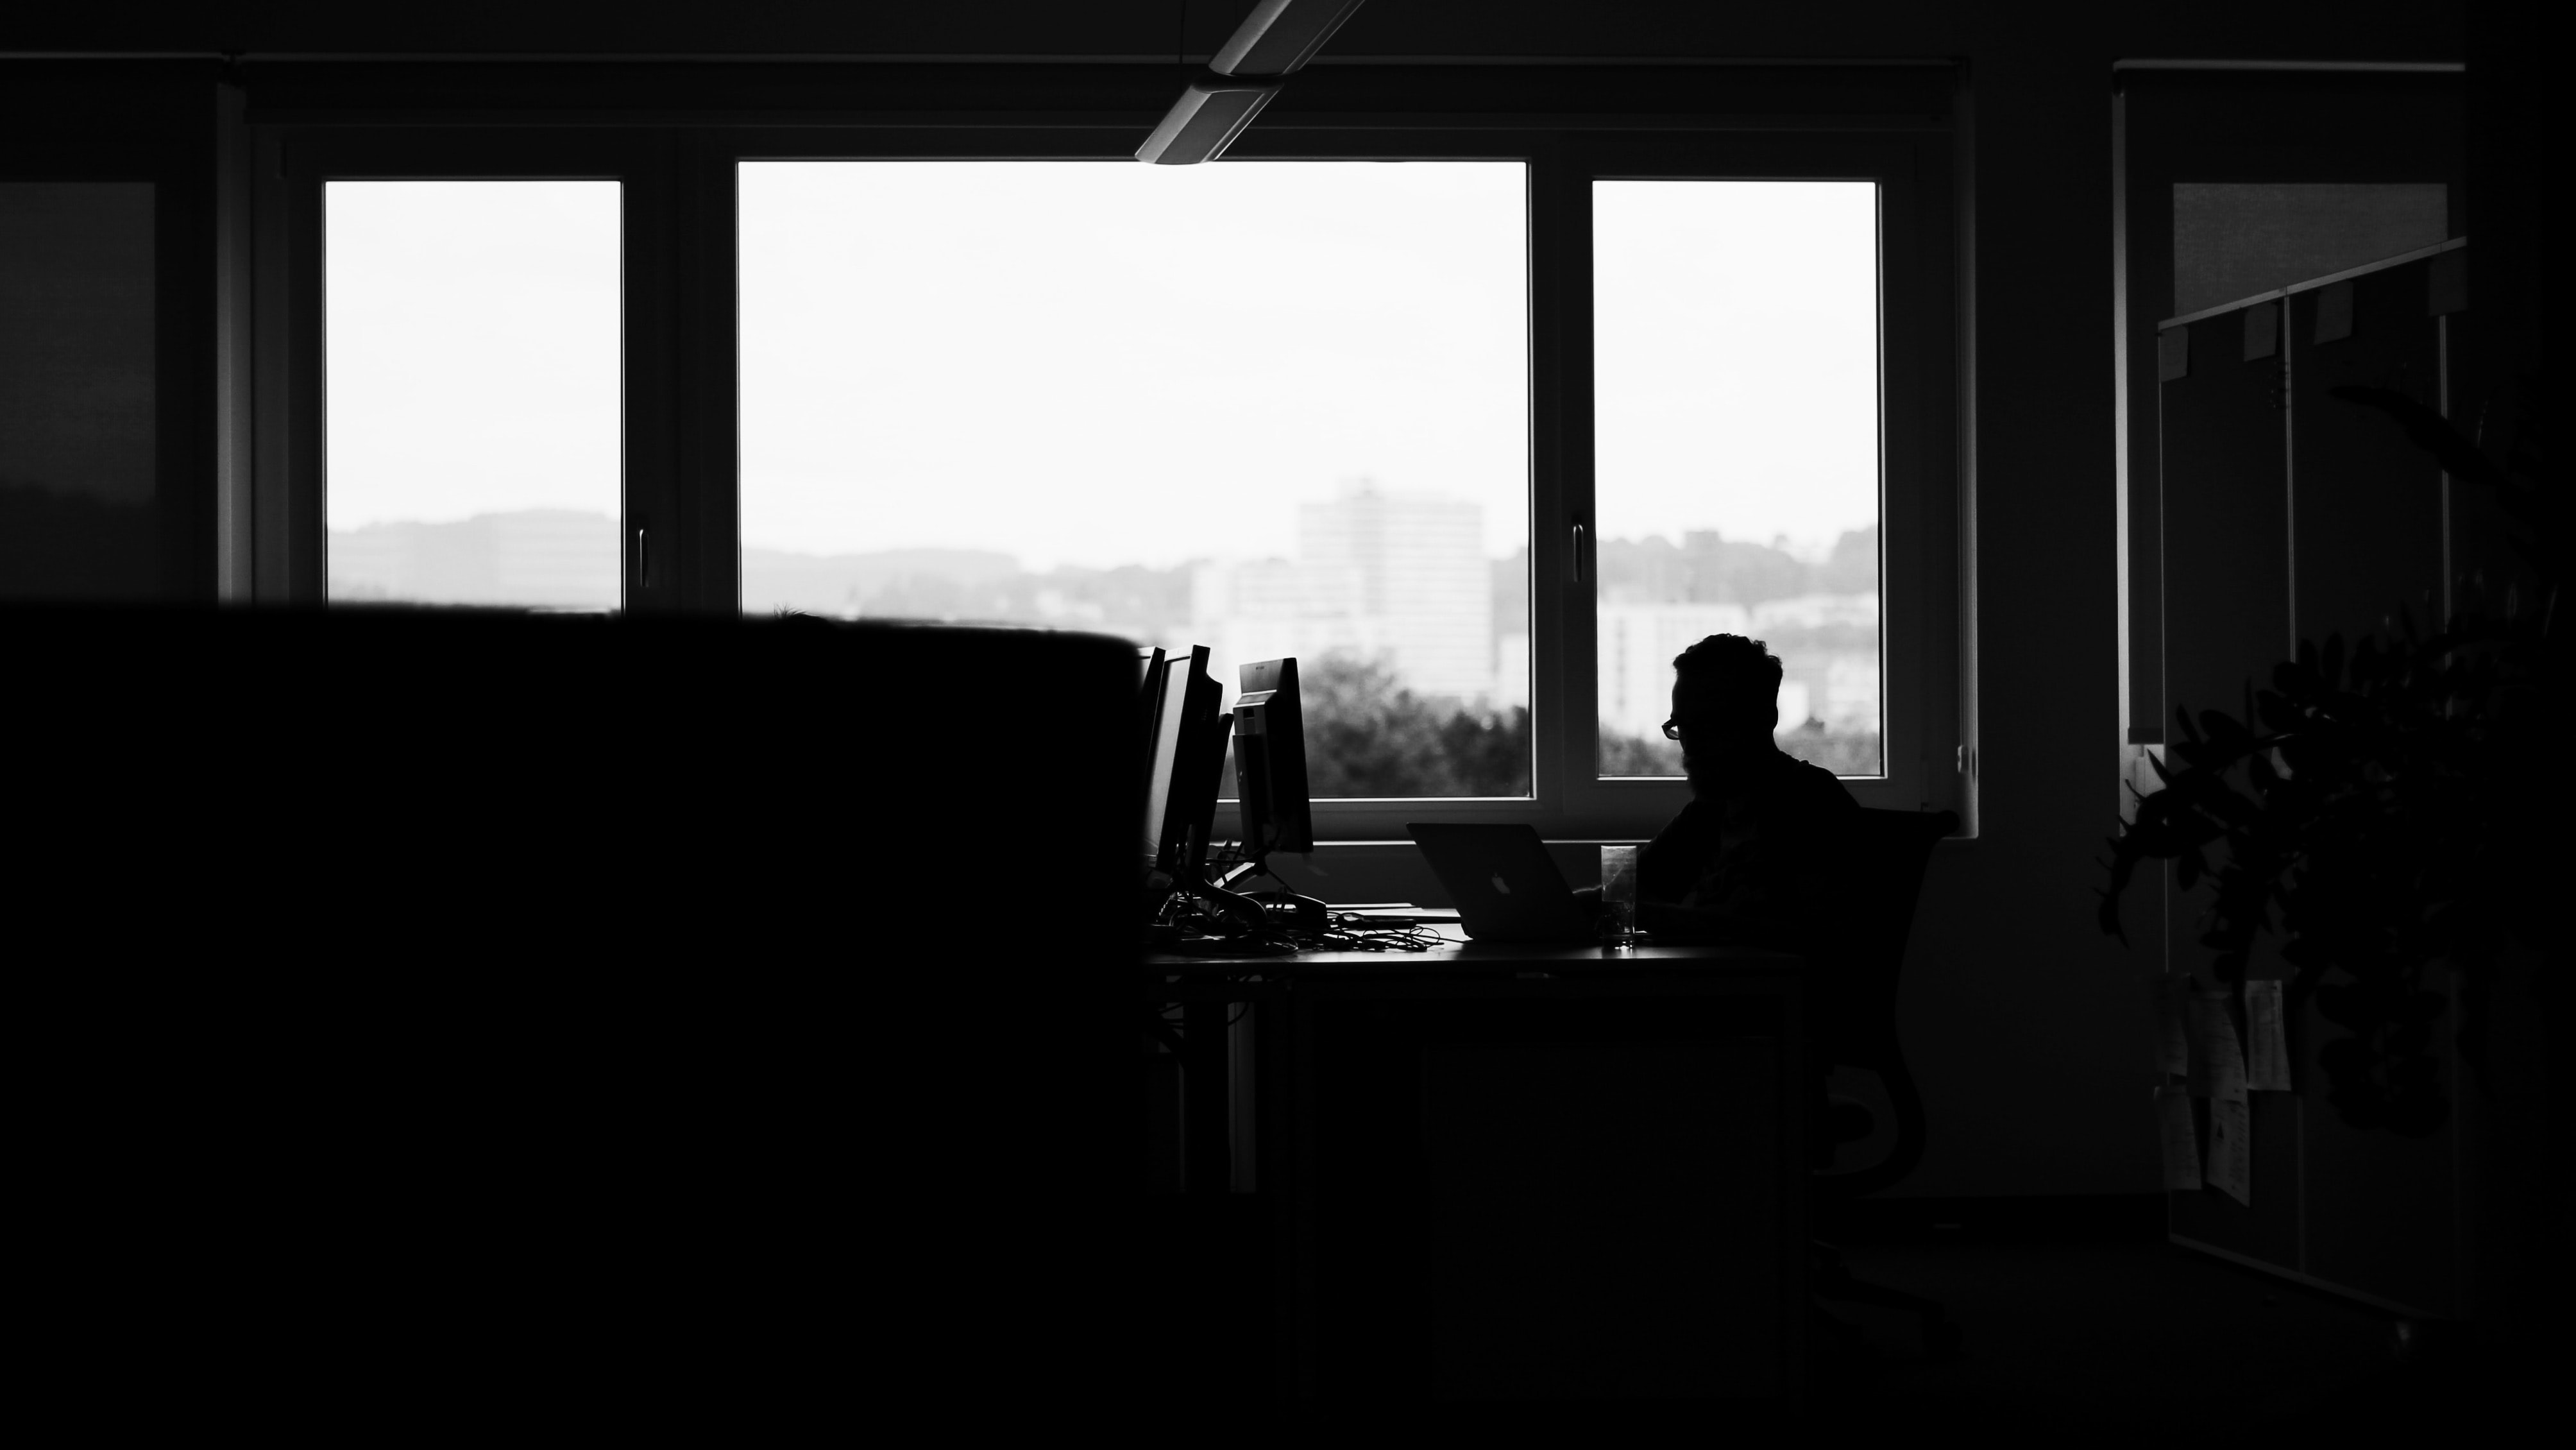 silhouette of man sitting along glass window